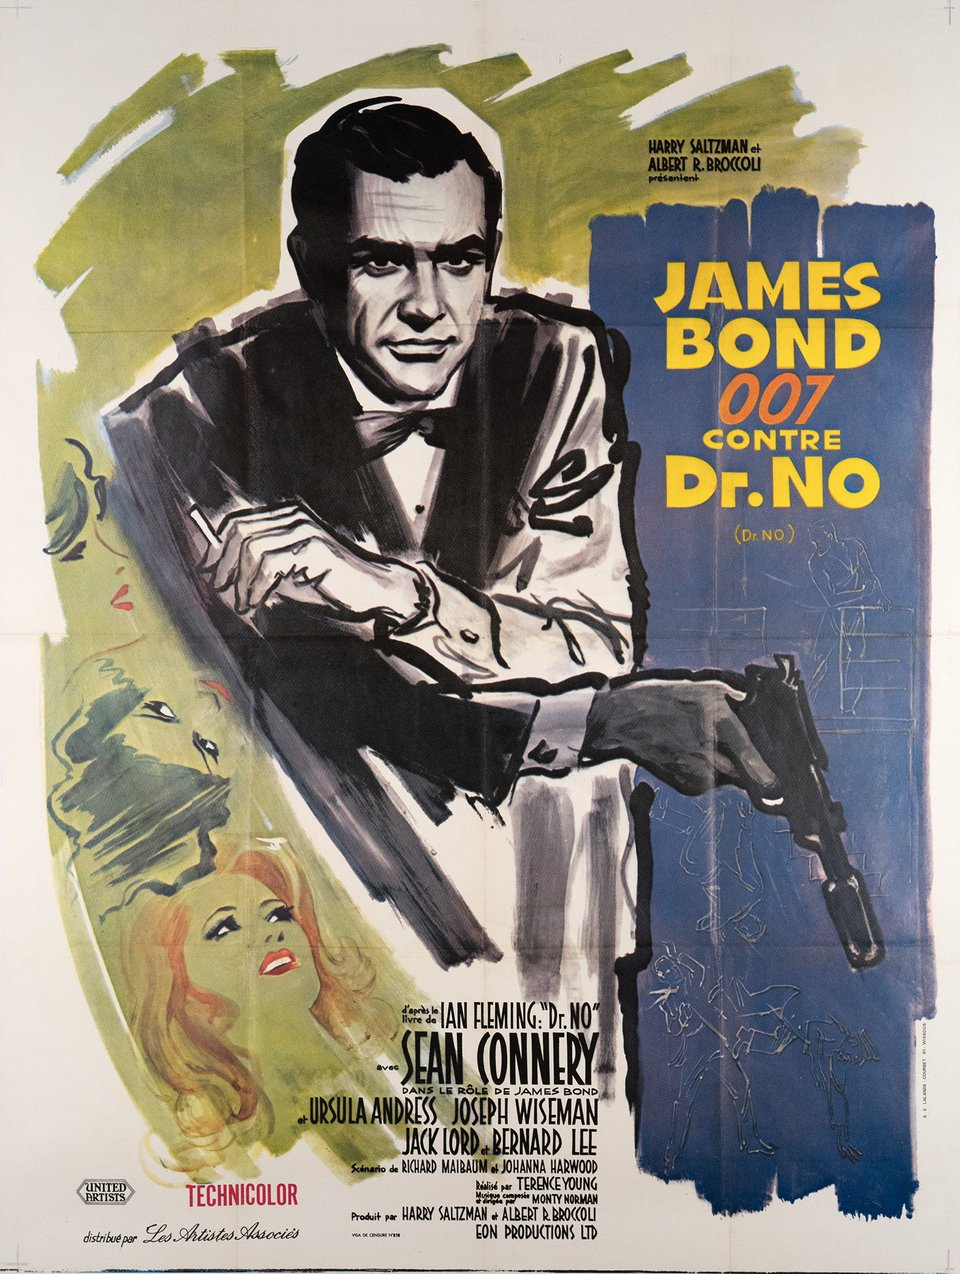 James Bond 007 contre Dr.NO – Vintage poster – Boris GRINSSON, Mitchell HOOKS – 1978